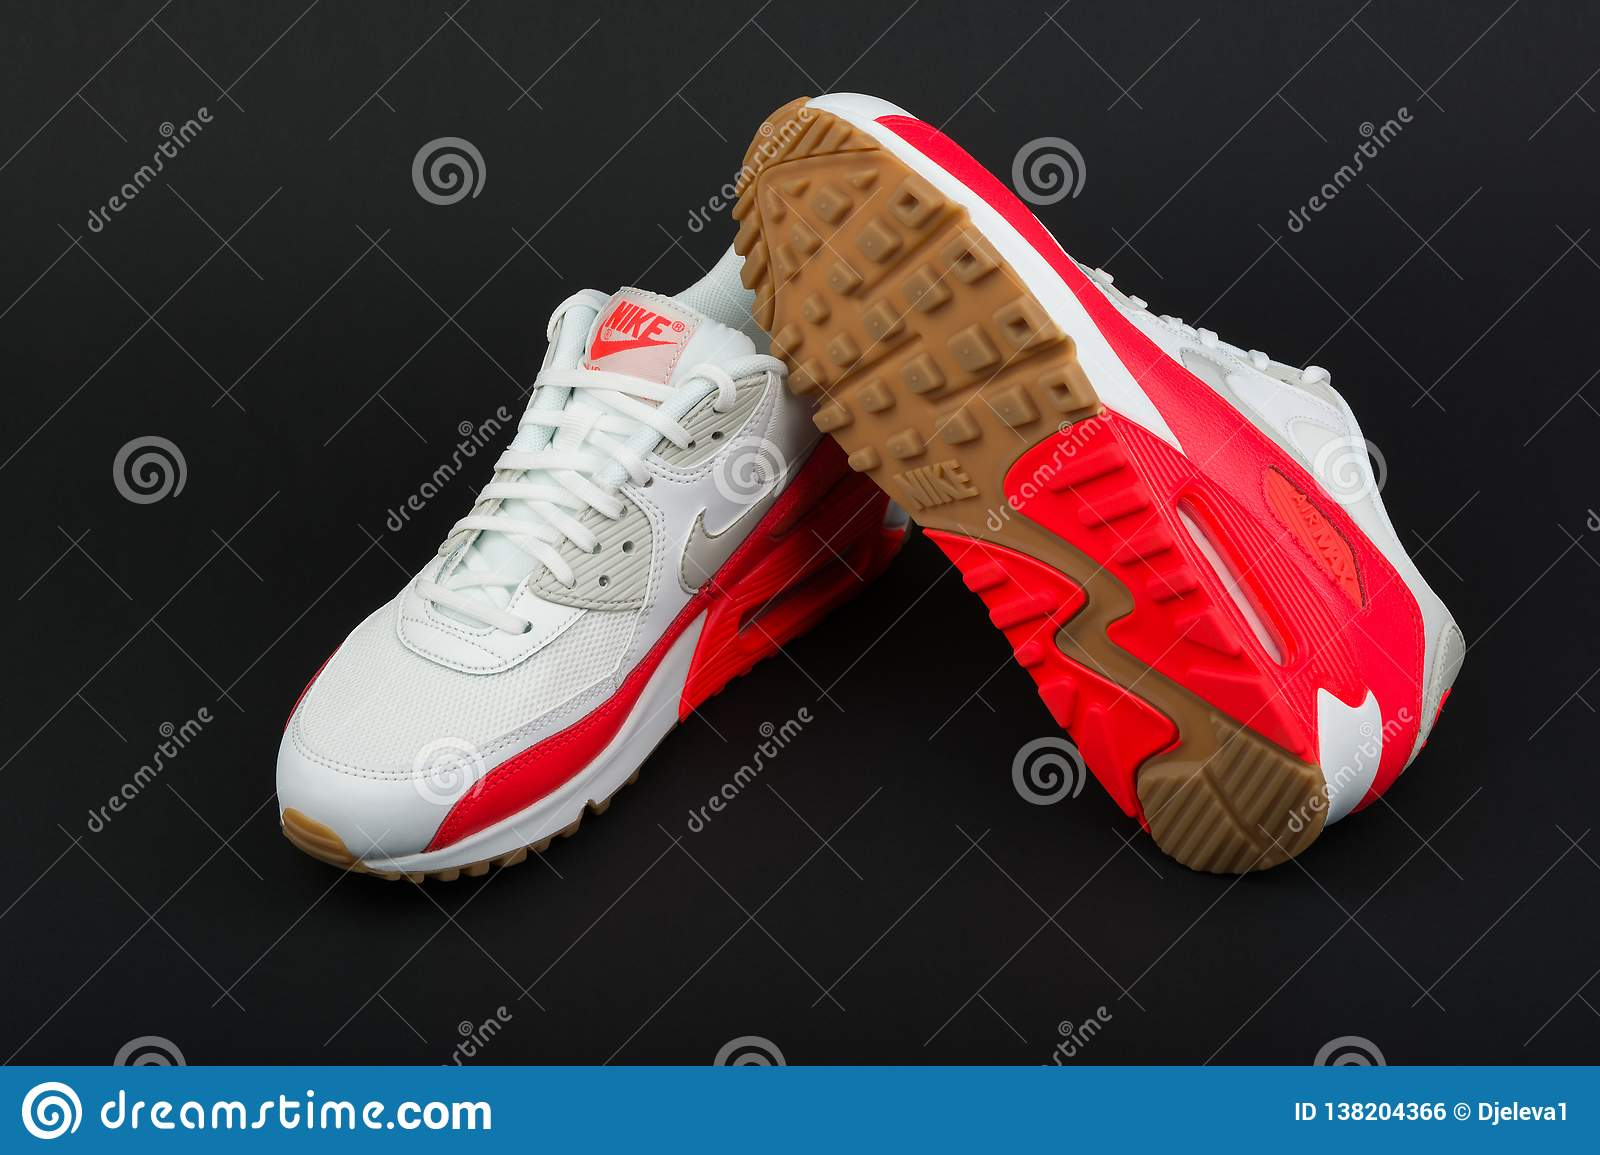 93362f3a BURGAS, BULGARIA - AUGUST 29, 2016: Nike Air MAX women`s shoes - sneakers -  trainers in white and orange on black background. Editorial Stock Photo